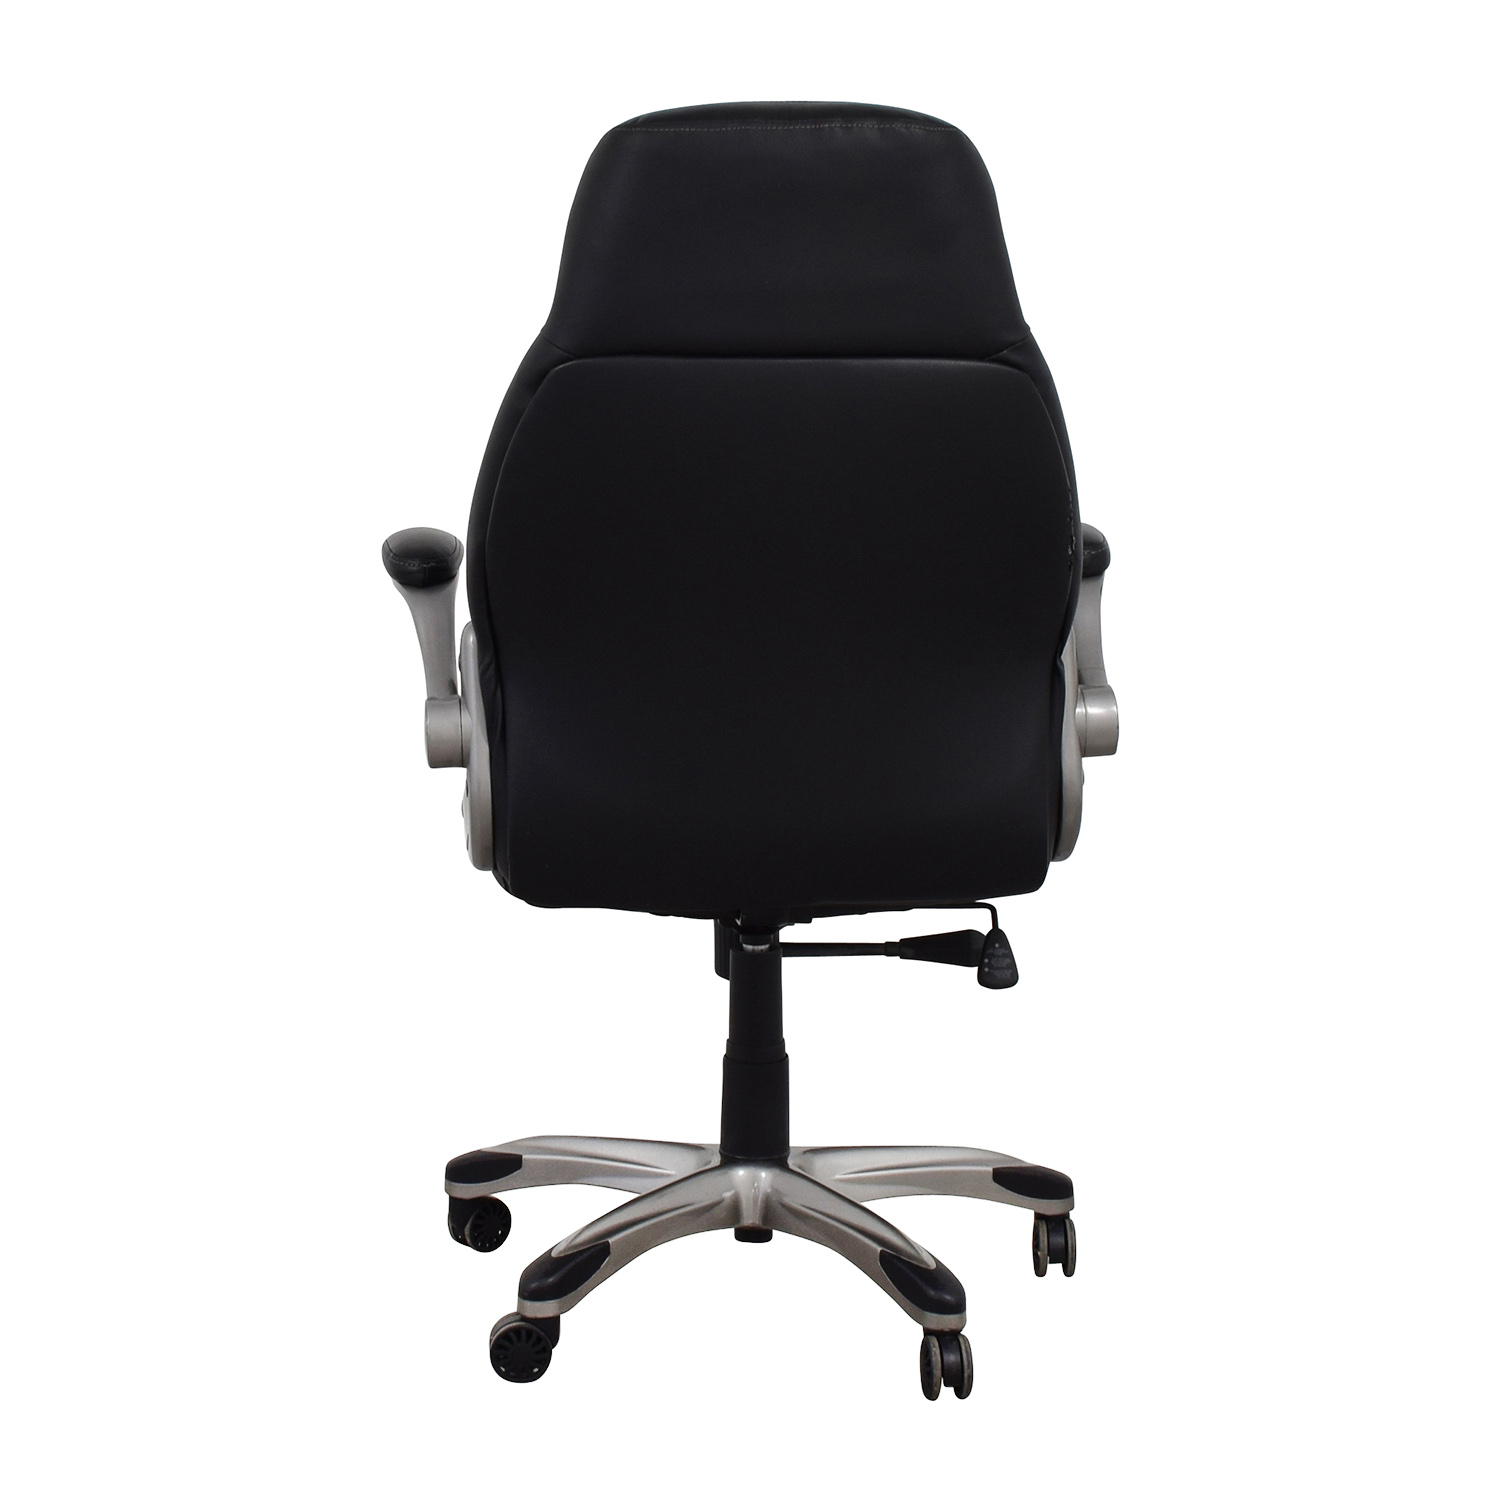 Staples Staples Torrent High-Back Executive Chair in Black for sale